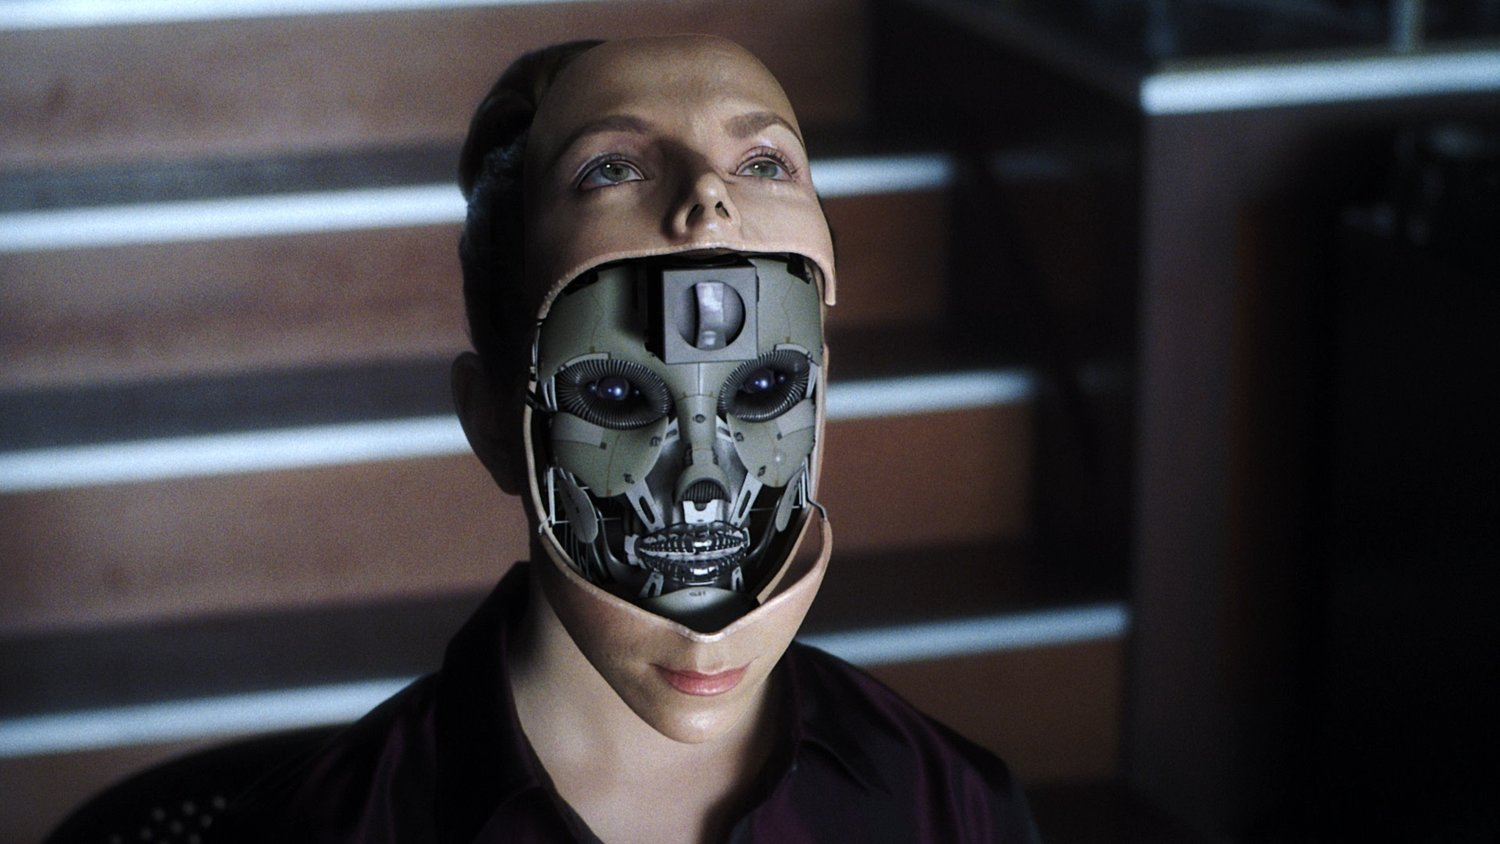 PAPERCLIPS ALL THE WAY DOWN: ARTIFICIAL INTELLIGENCE AND EXISTENTIAL RISK